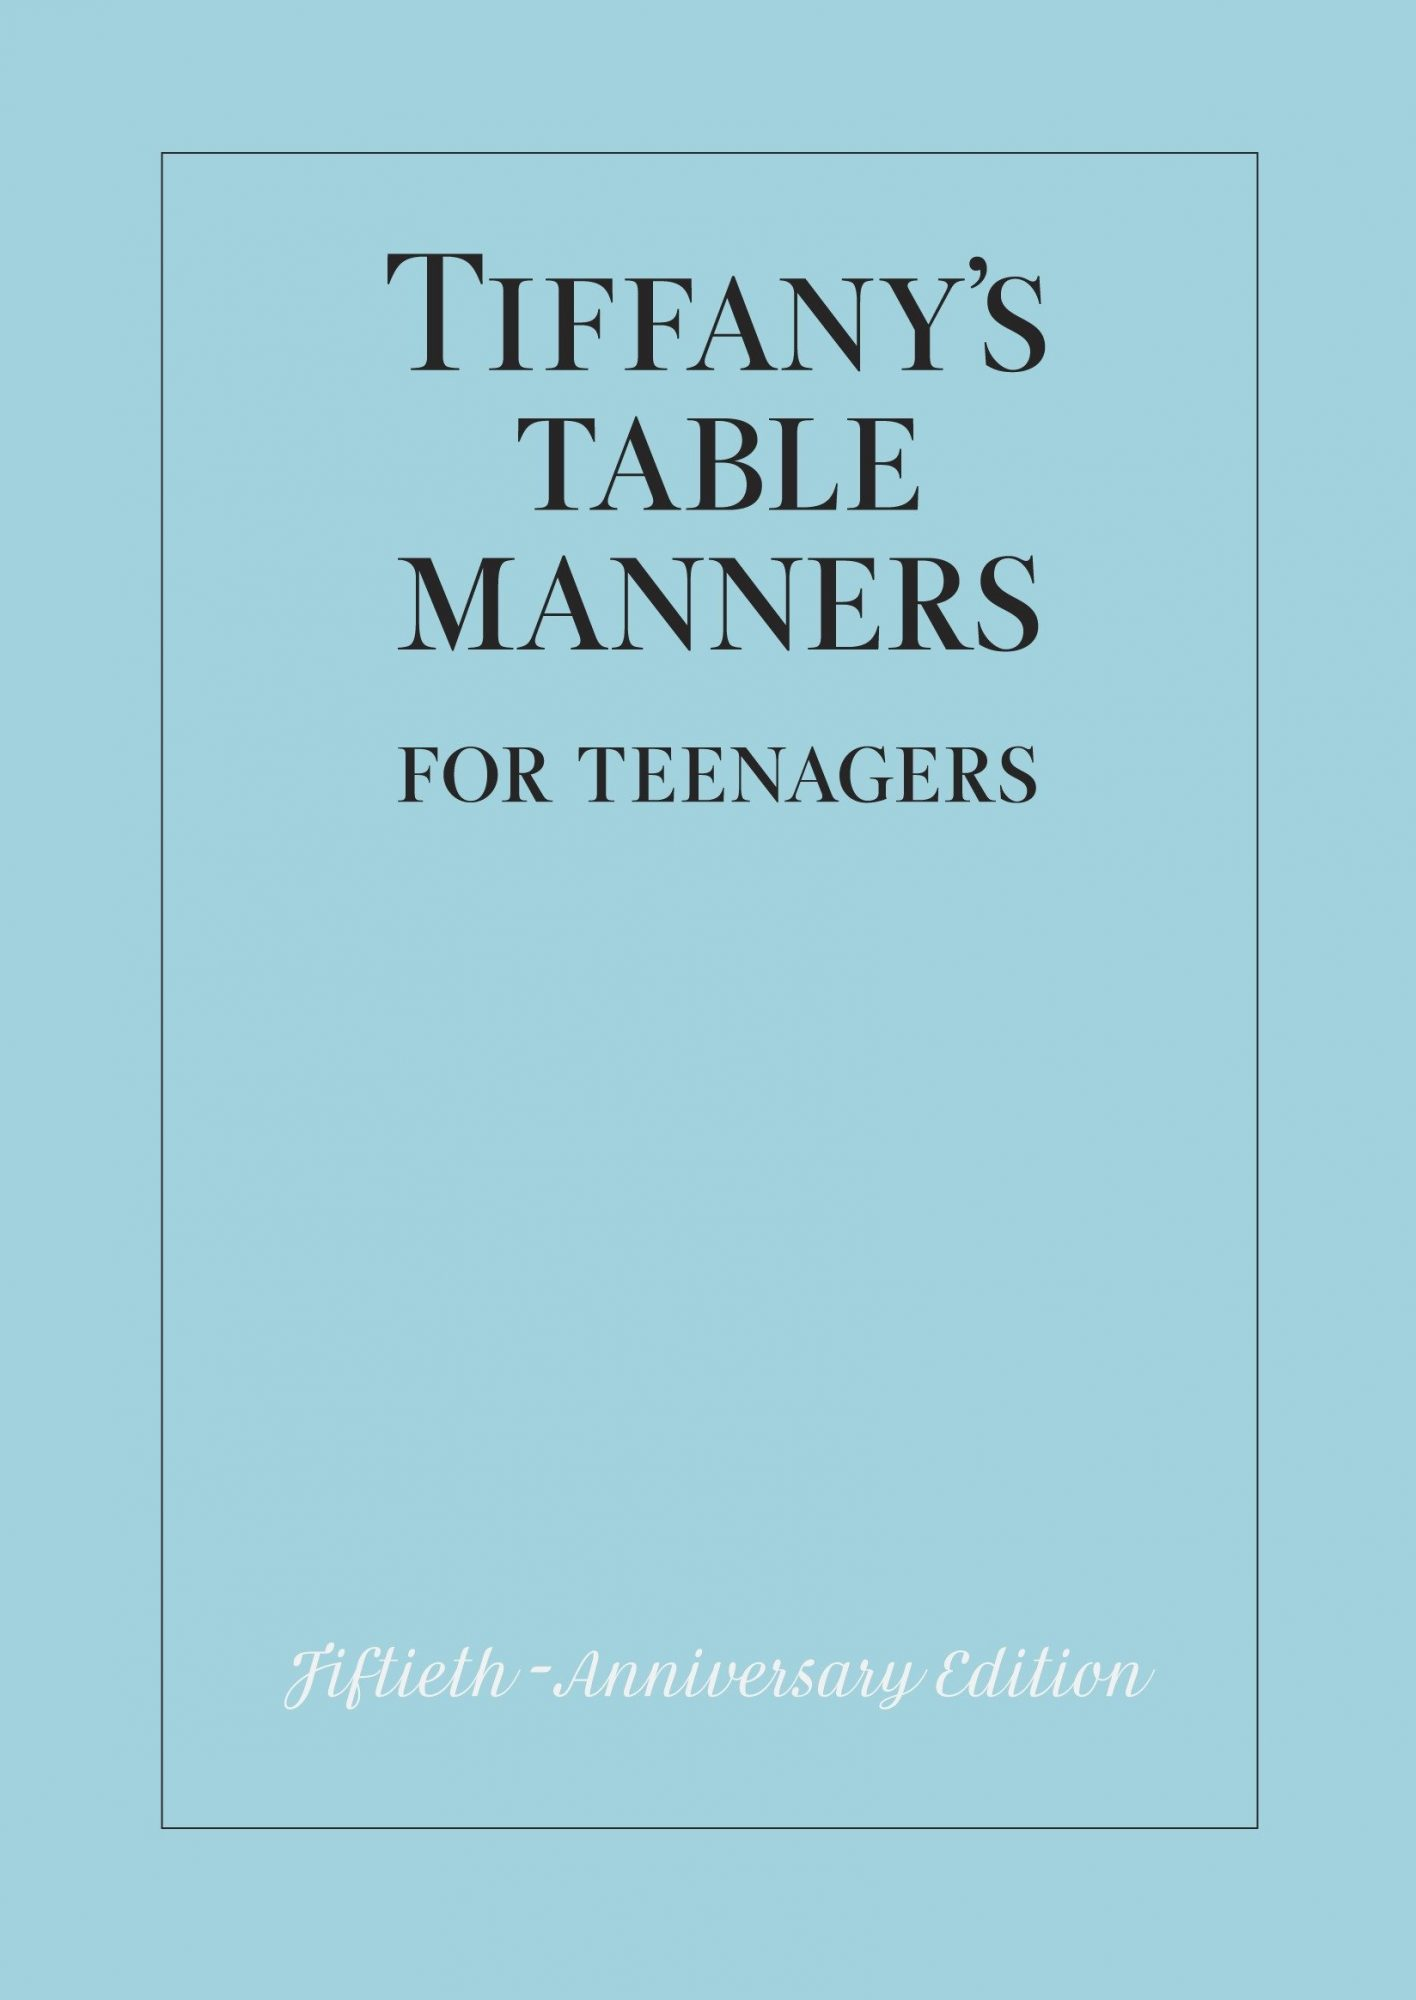 Tiffany's Table Manners for Teenagers by Walter Hoving